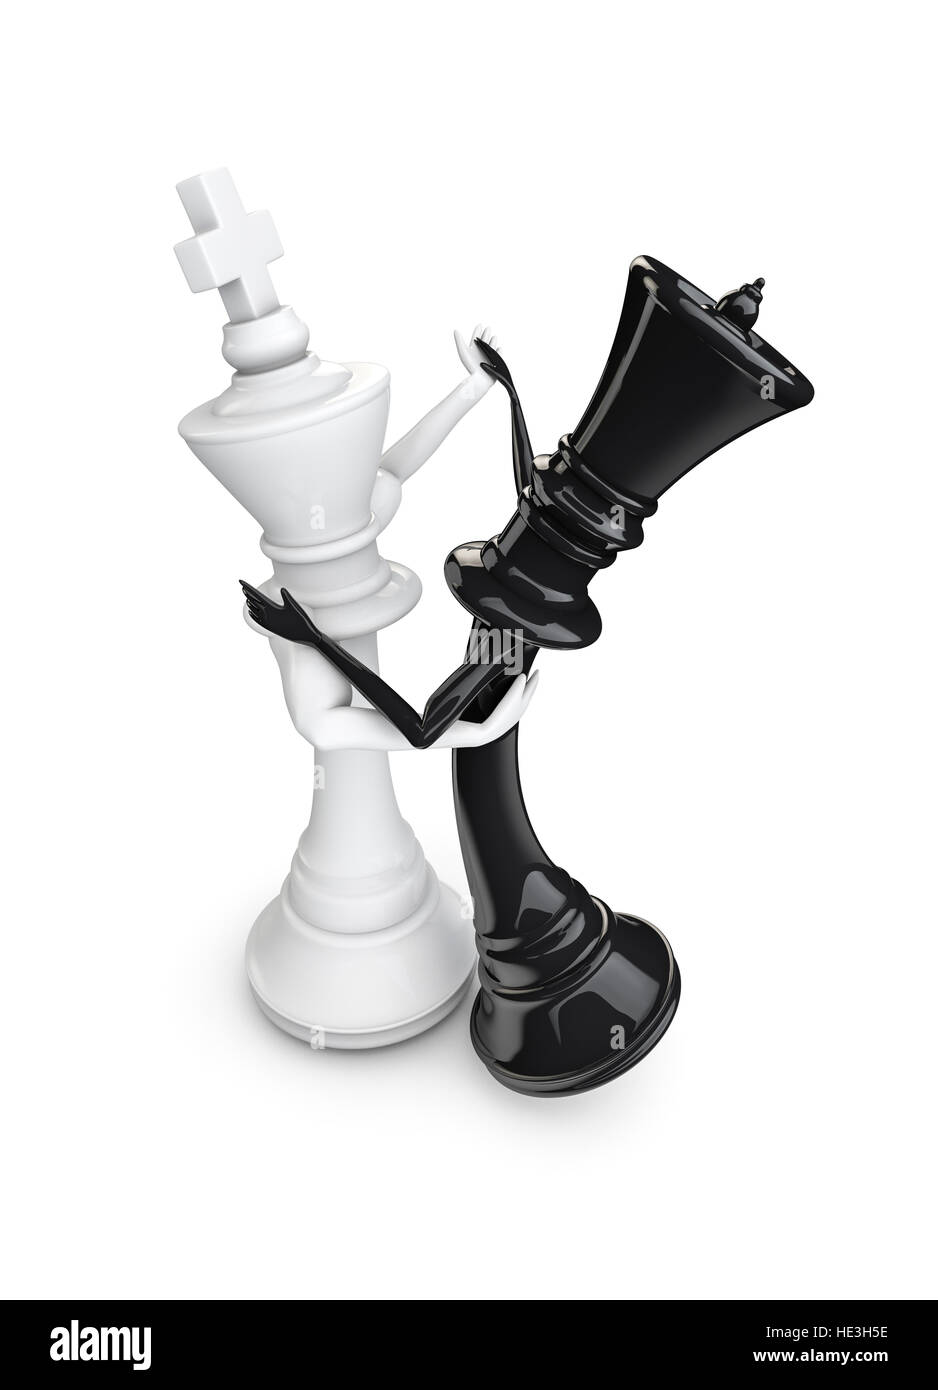 Chess piece dancers 3d illustration of white chess king and black queen dancing